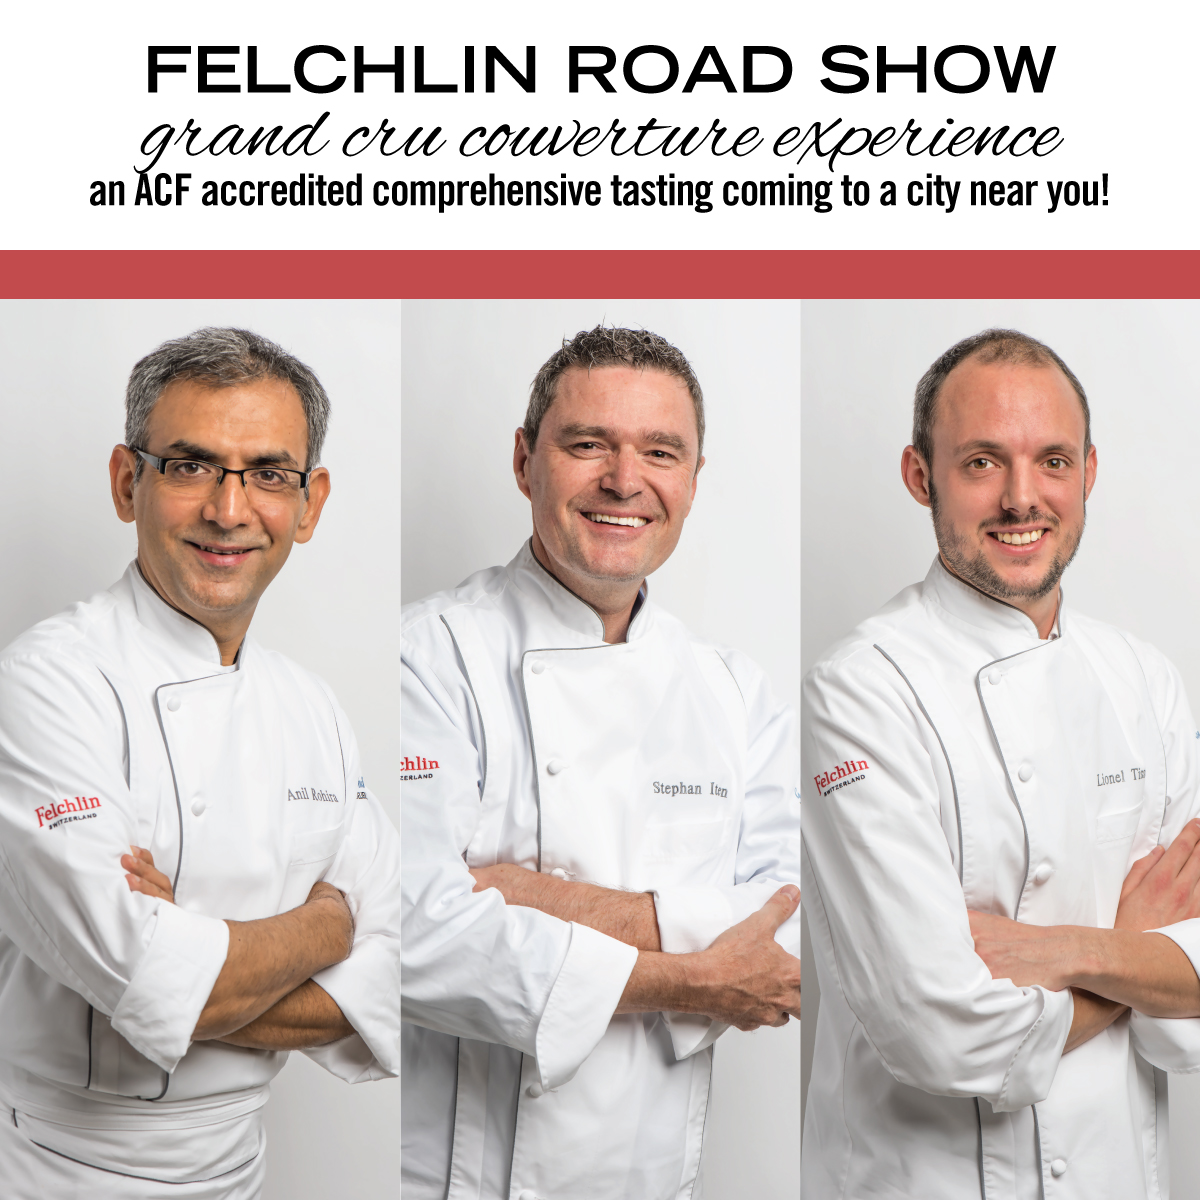 Events-Page_Felchlin-Road-Show-1